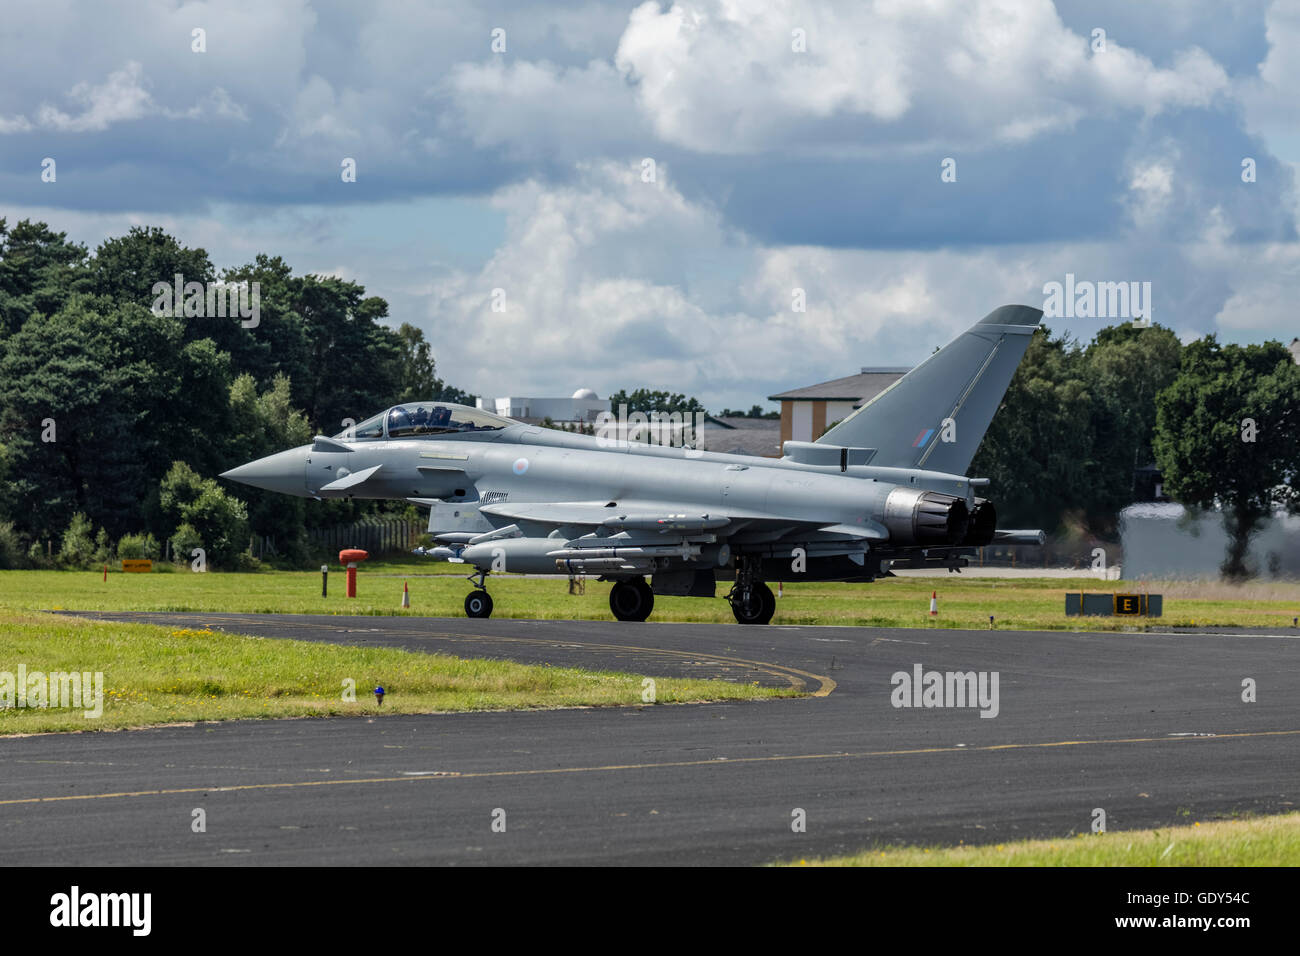 RAF Eurofighter Typhoon air plane on the tarmac of the runway at Farnborough airport after landing at the Farnborough - Stock Image